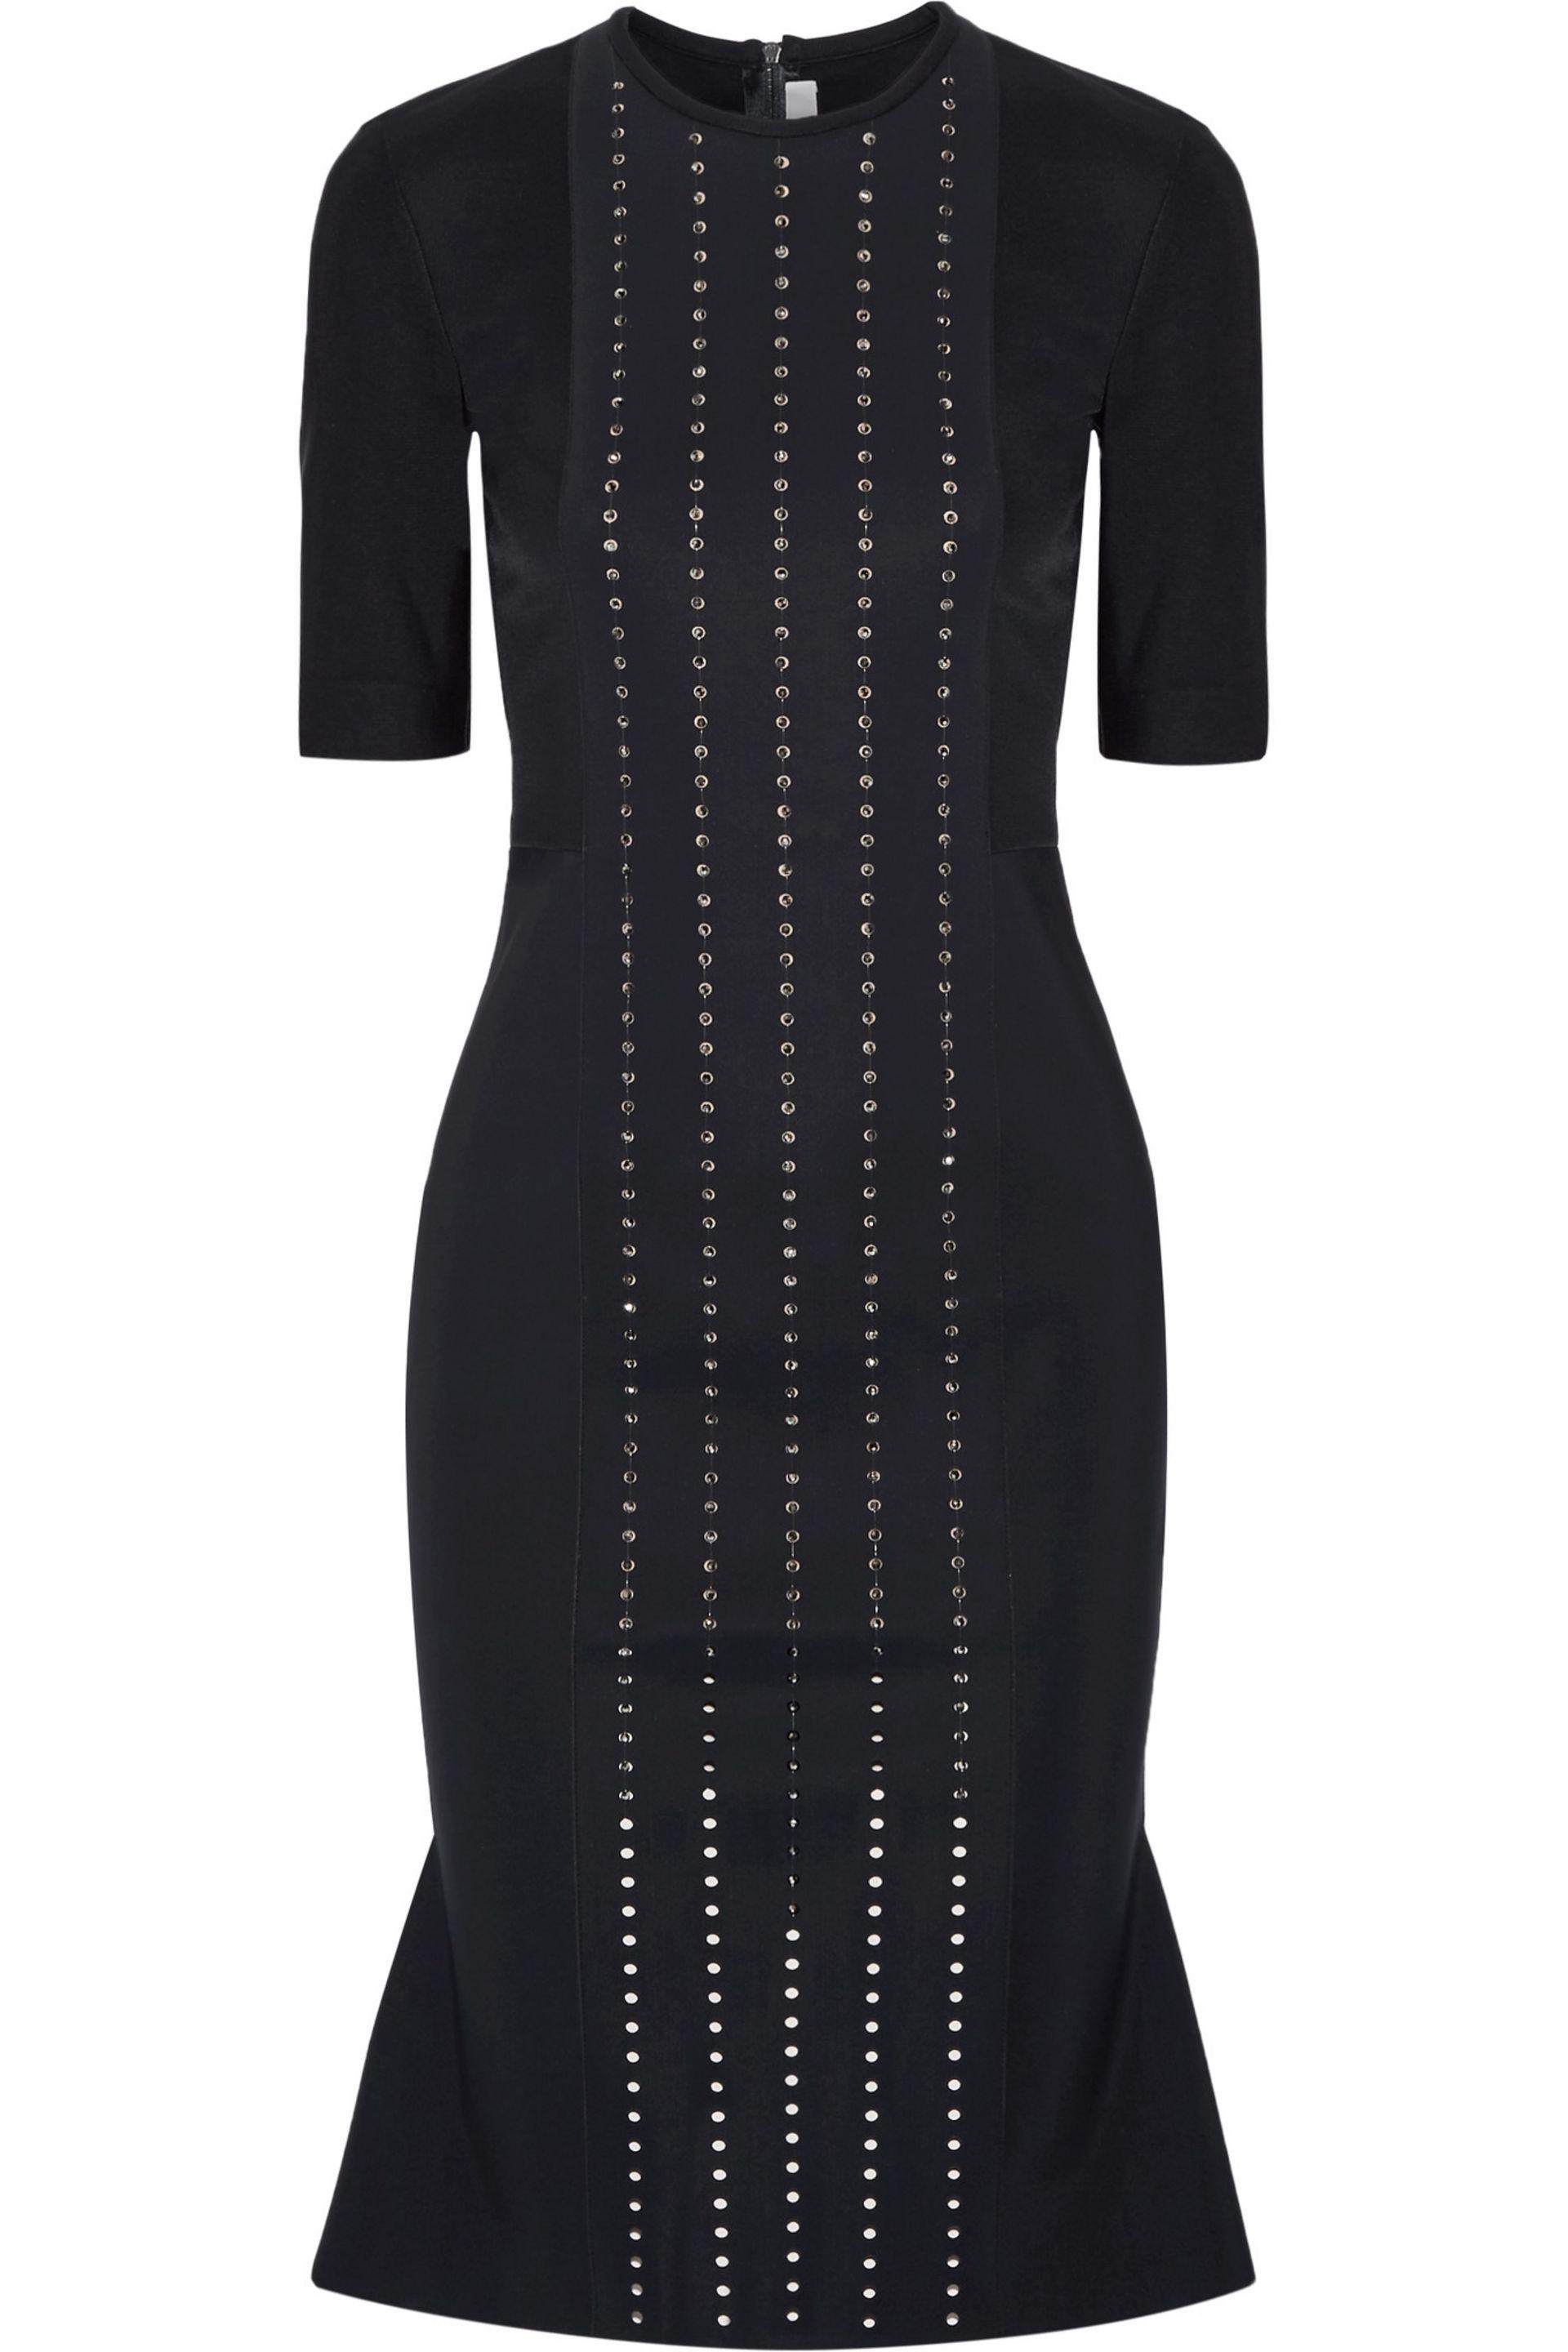 Dion Lee Woman Aperture Swarovski Crystal-embellished Tech-jersey Dress Midnight Blue Size 6 Dion Lee onRcO